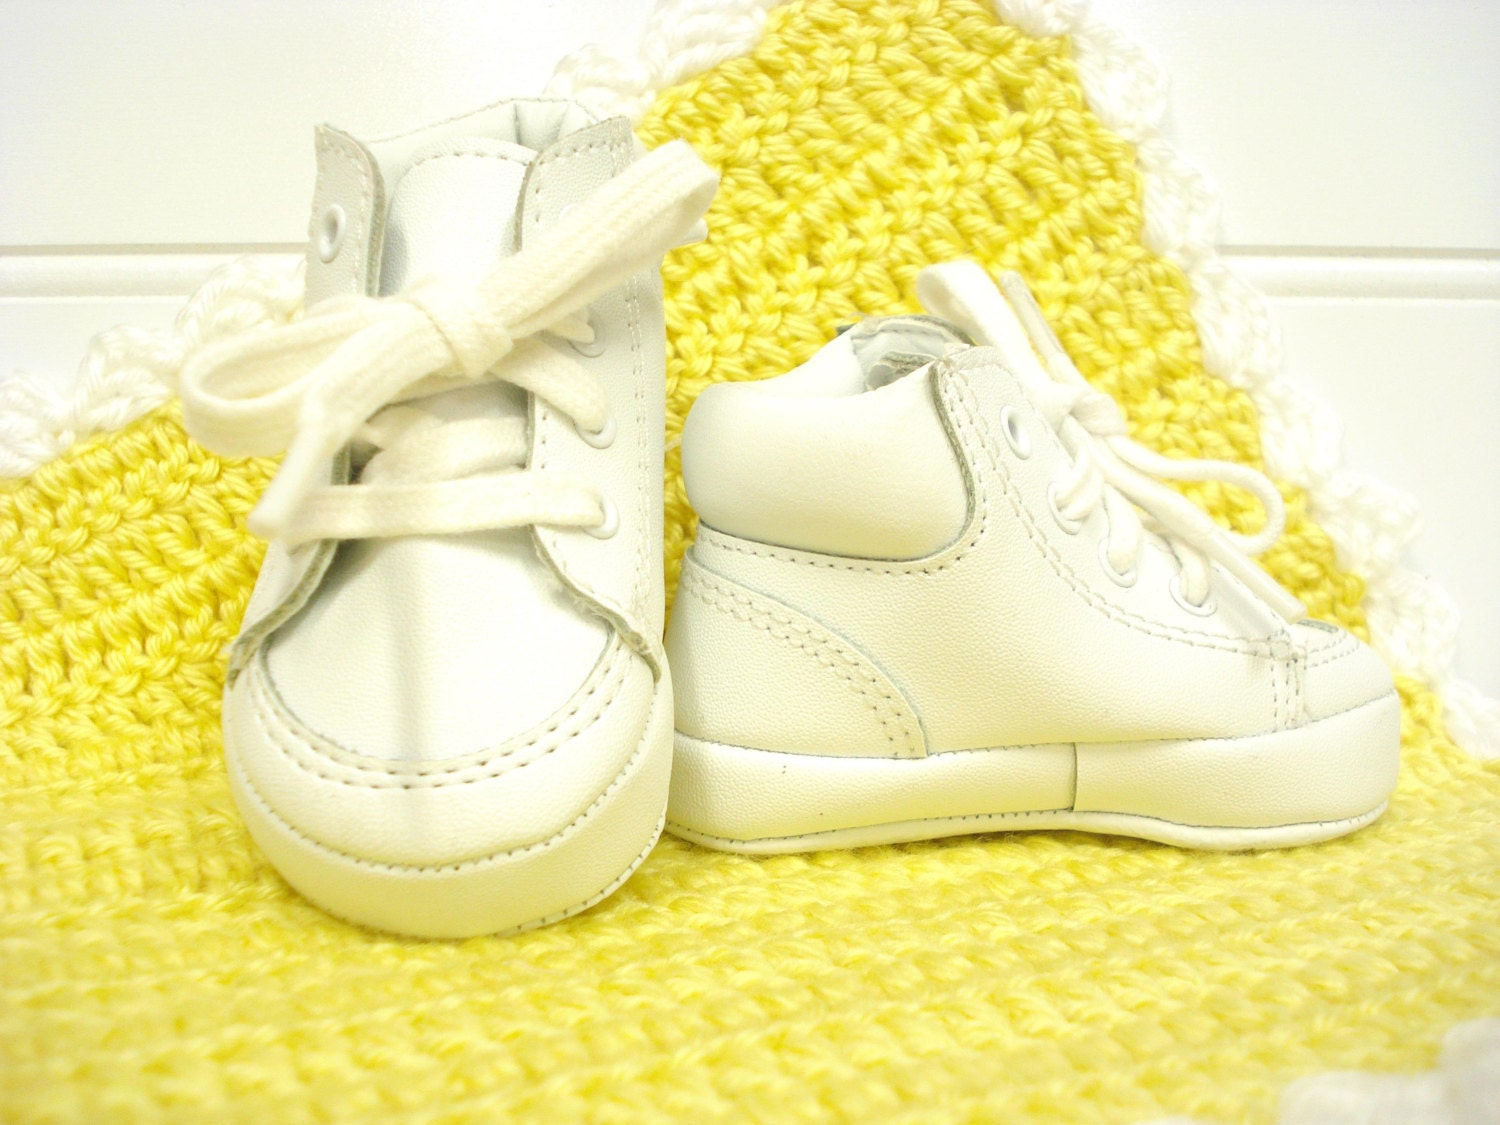 vintage baby shoes baby tennis shoes white high top shoes